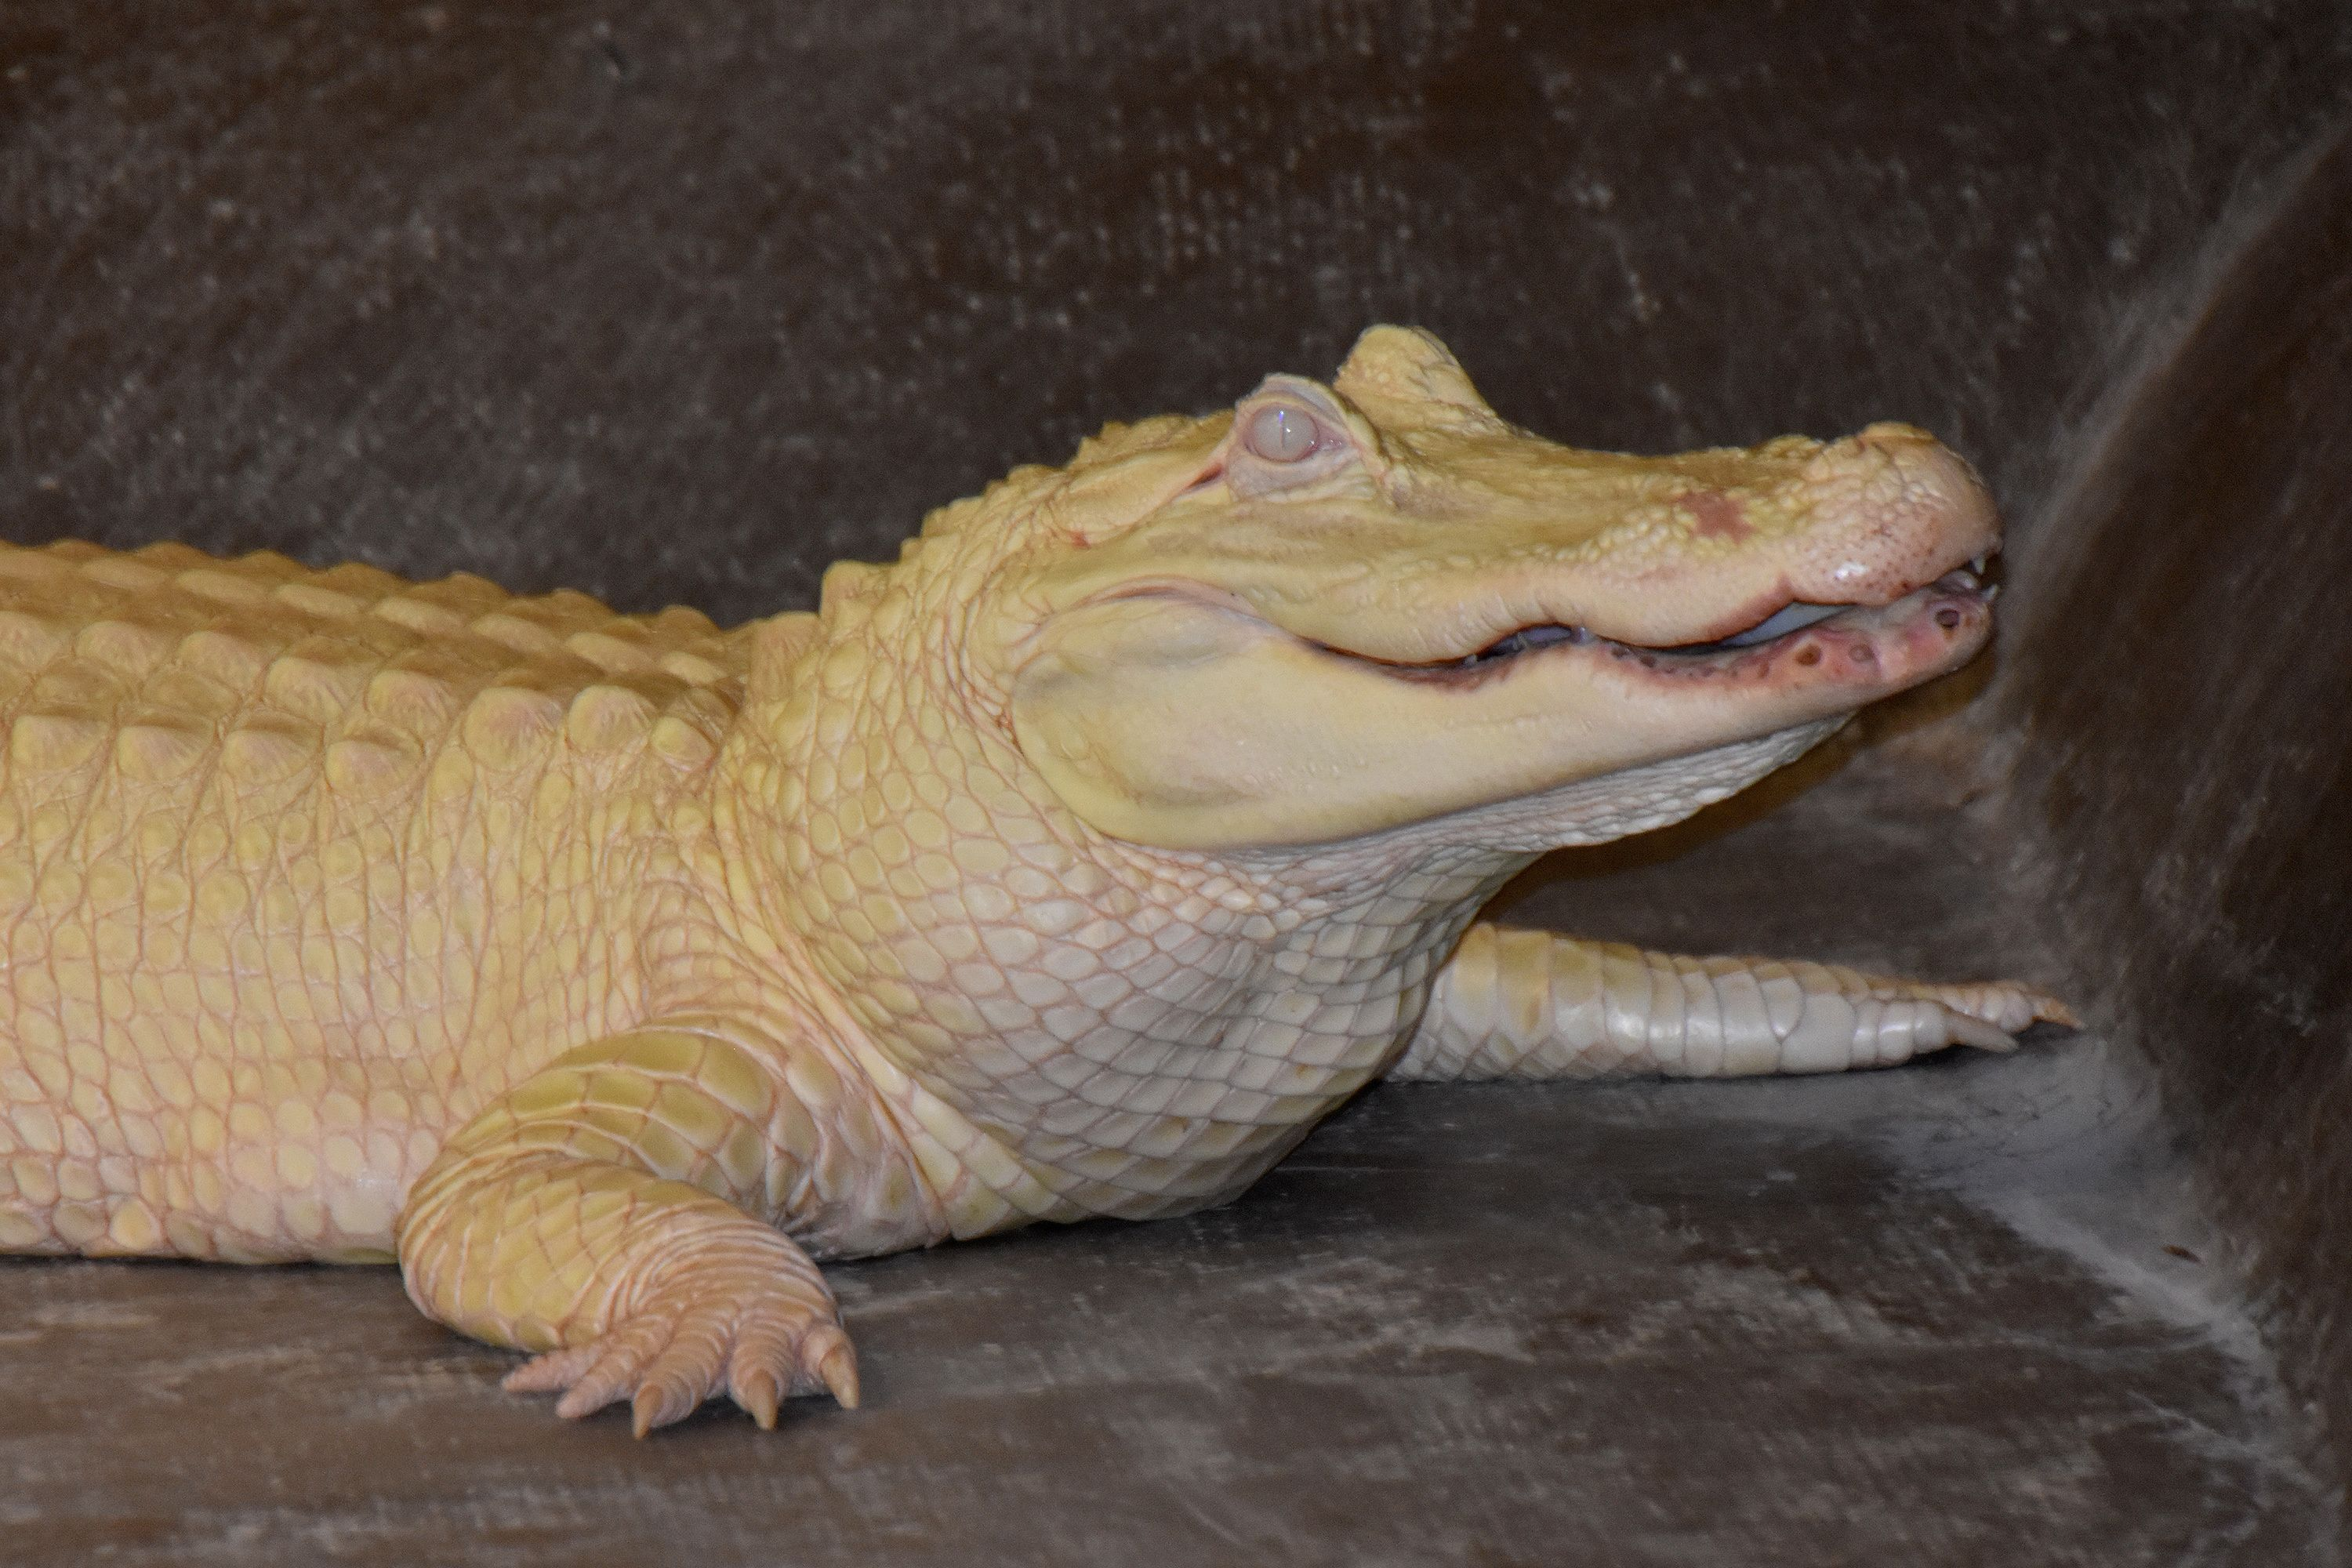 View of an albino alligator in New Orleans